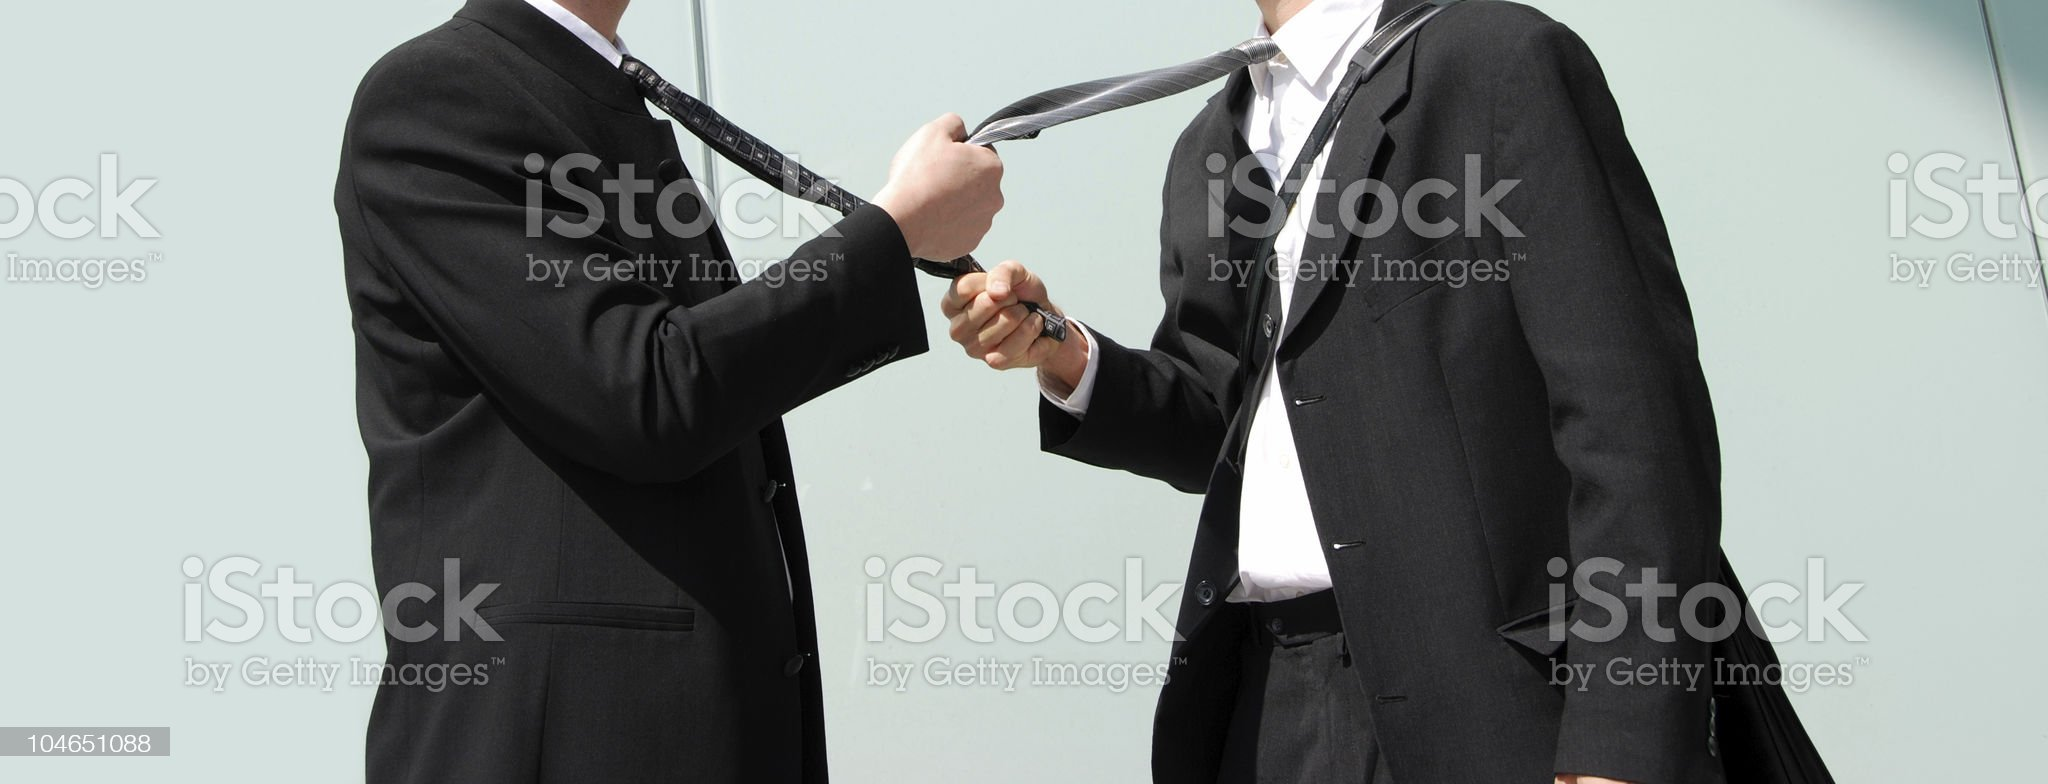 Rivalry royalty-free stock photo